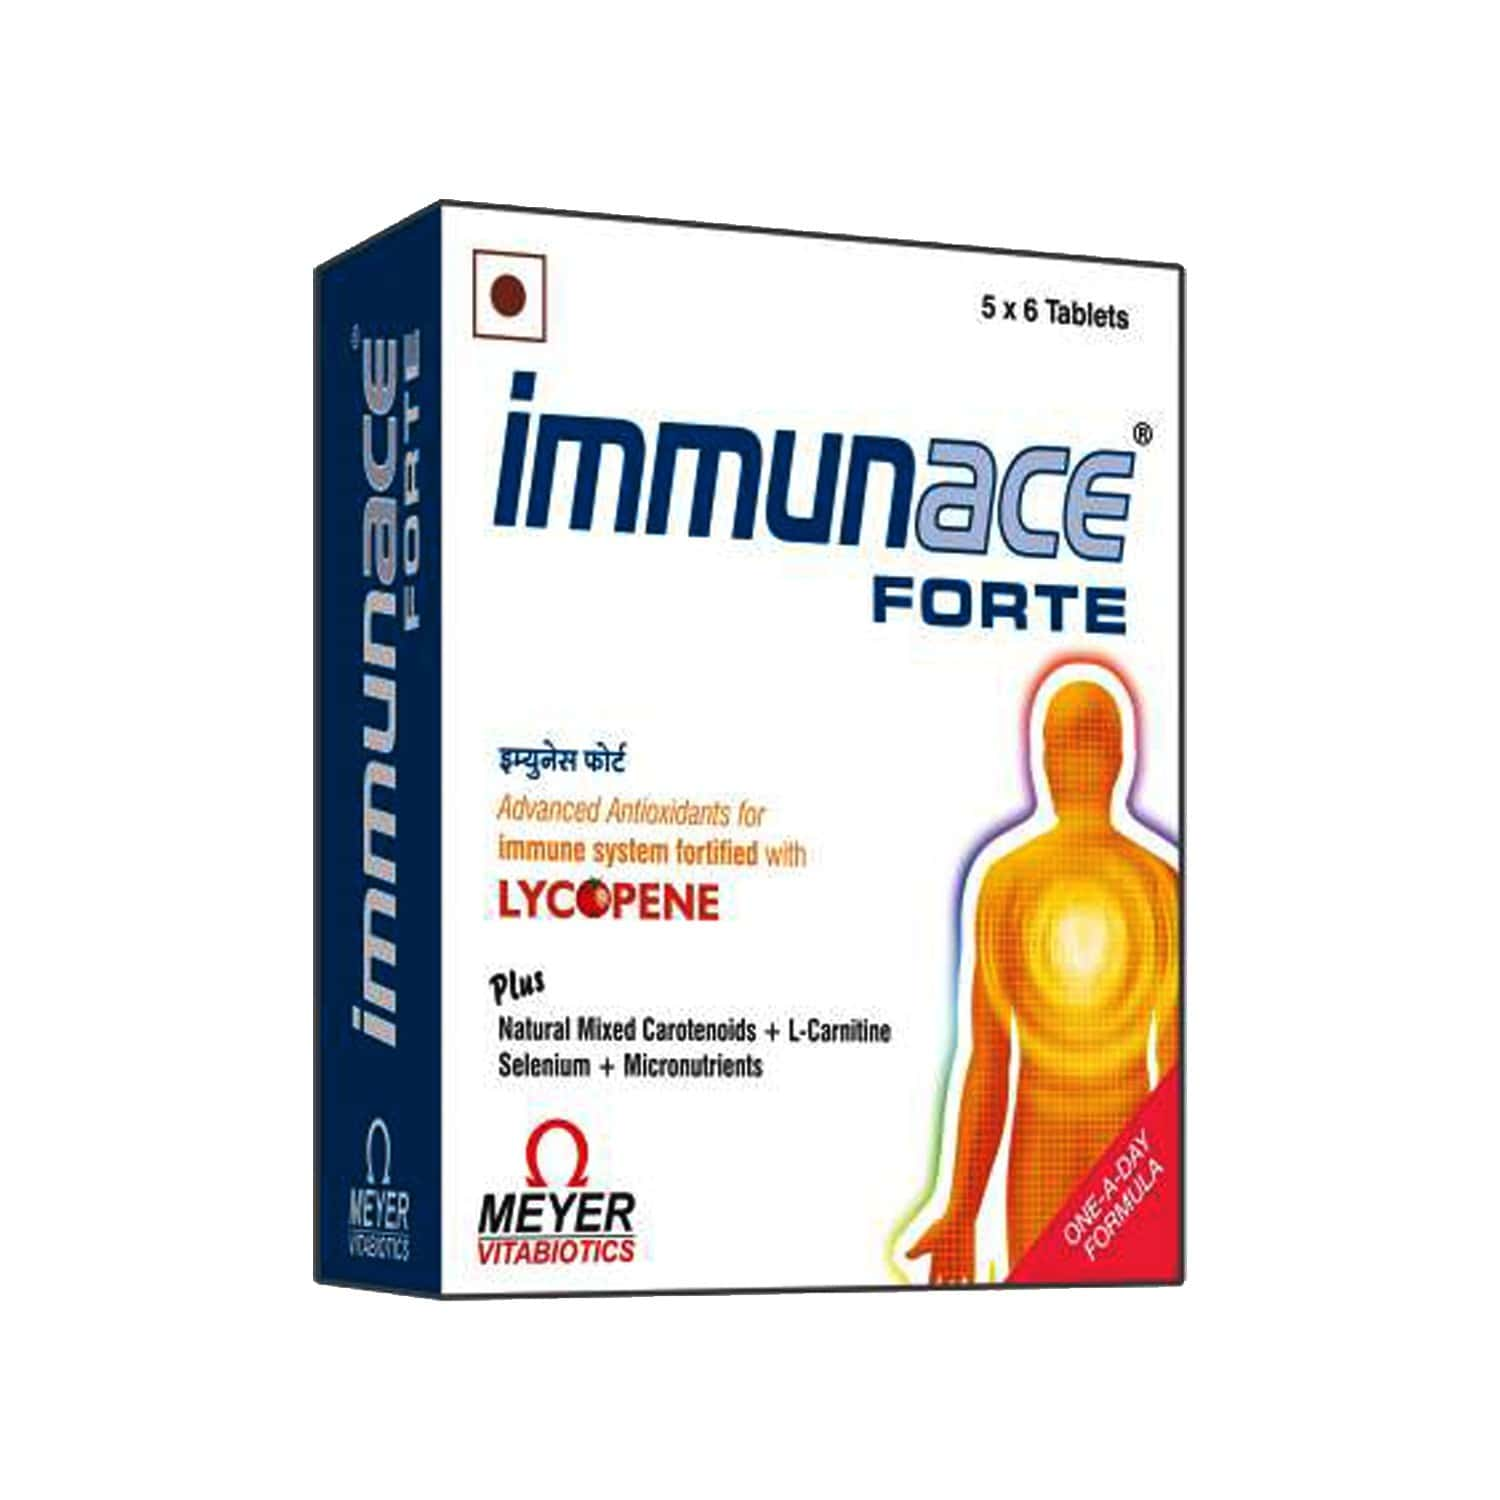 Immunace Forte - Health Supplements (with Vitamin C, Zinc And Selemium) With Wellman 30 Tablet Free